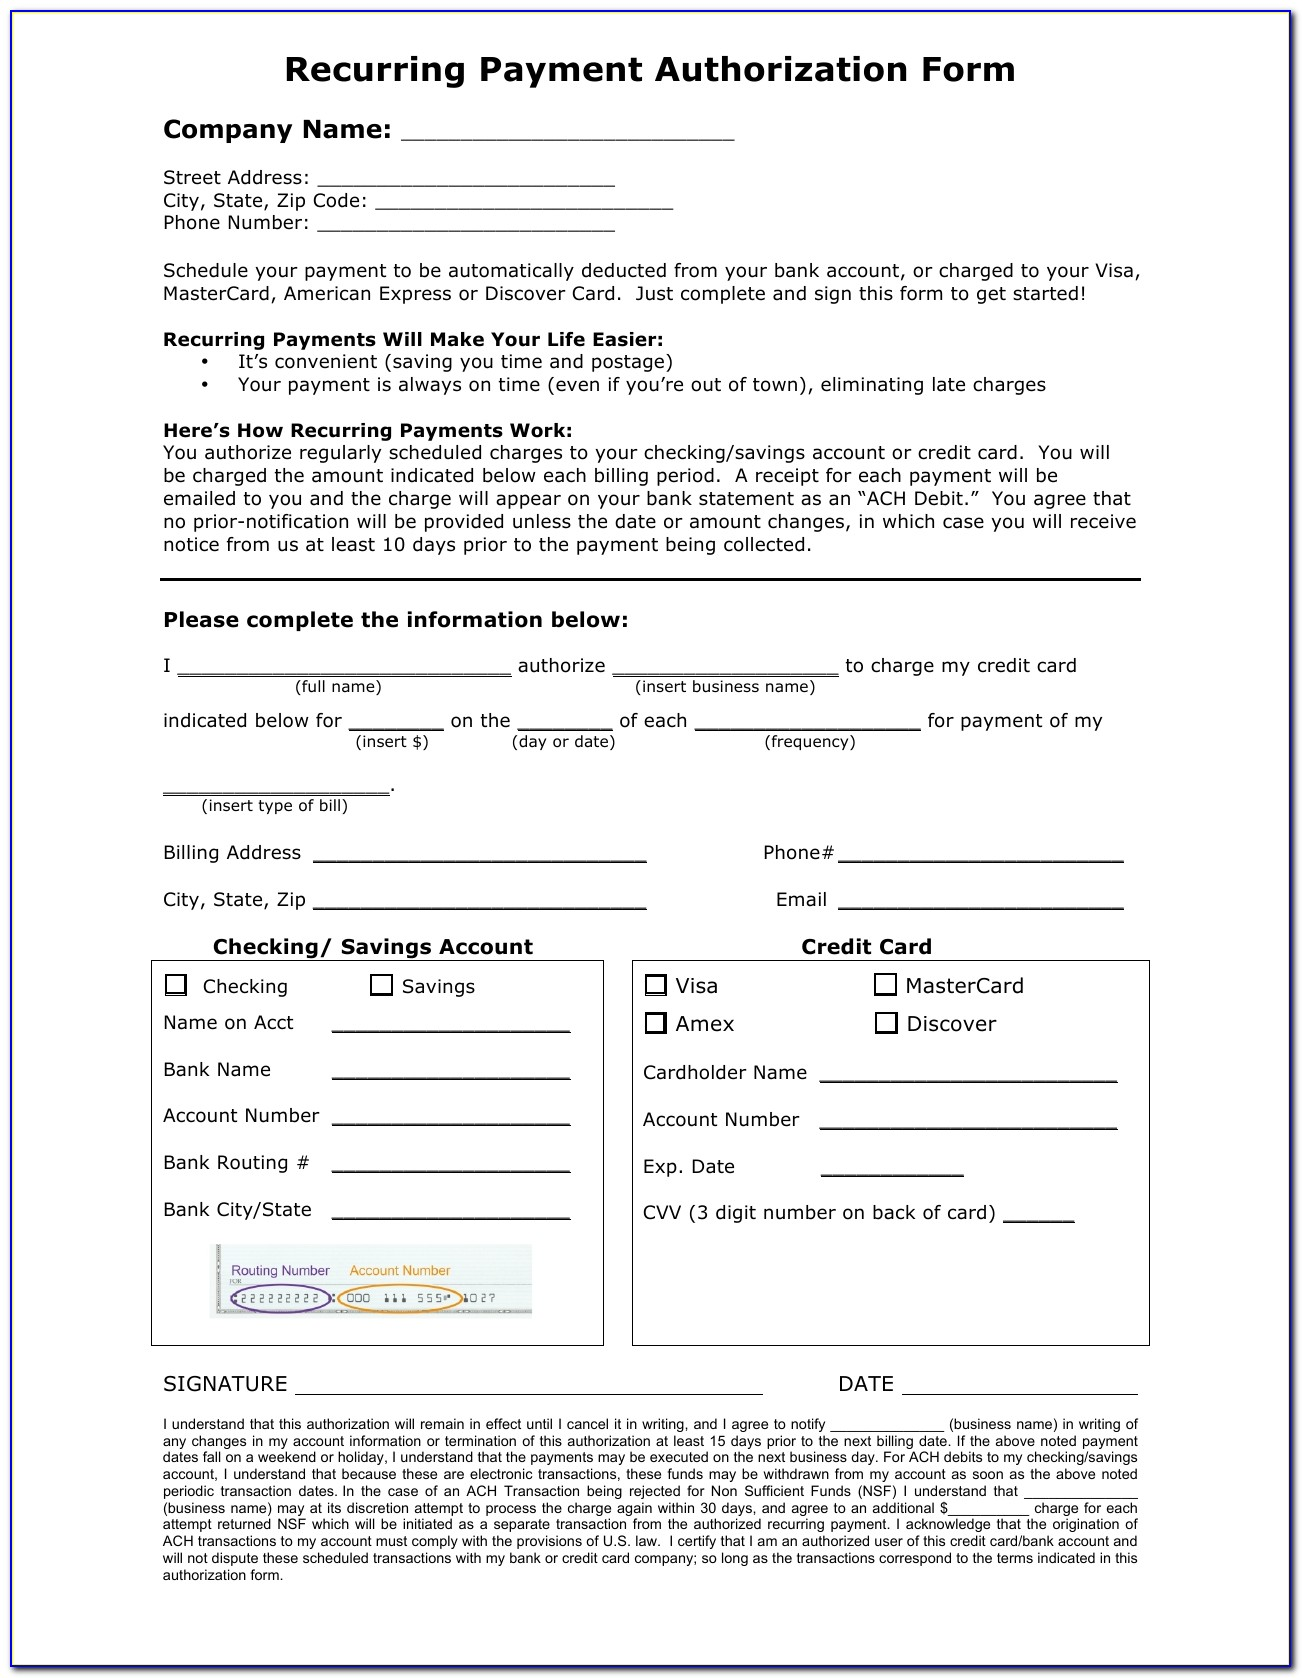 Download Recurring Payment Authorization Form Template | Credit Card Regarding Ach Authorization Form Template